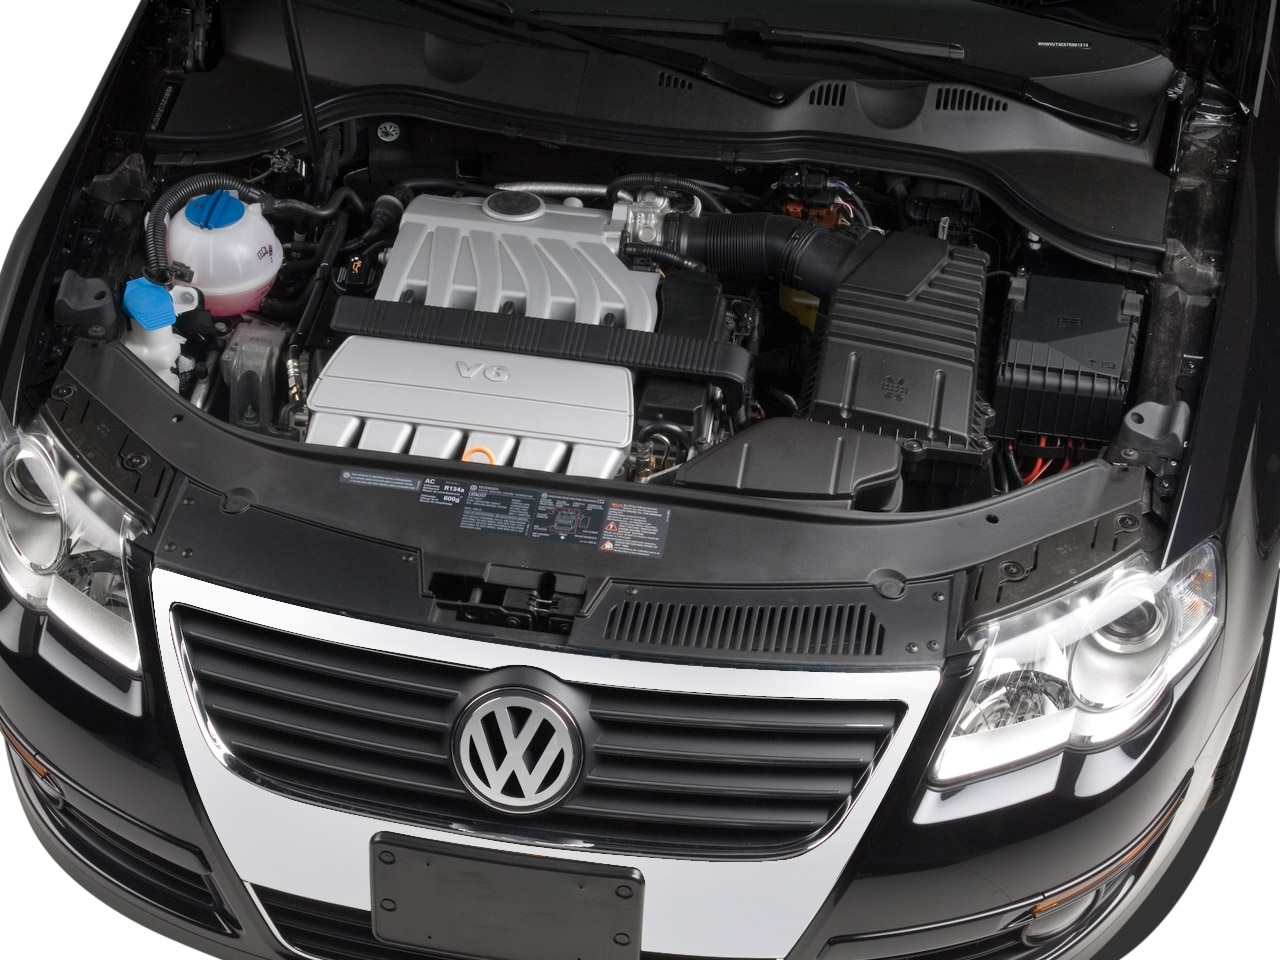 hight resolution of 2008 volkswagen passat reviews and rating motortrend vw touareg 2004 fuse diagram